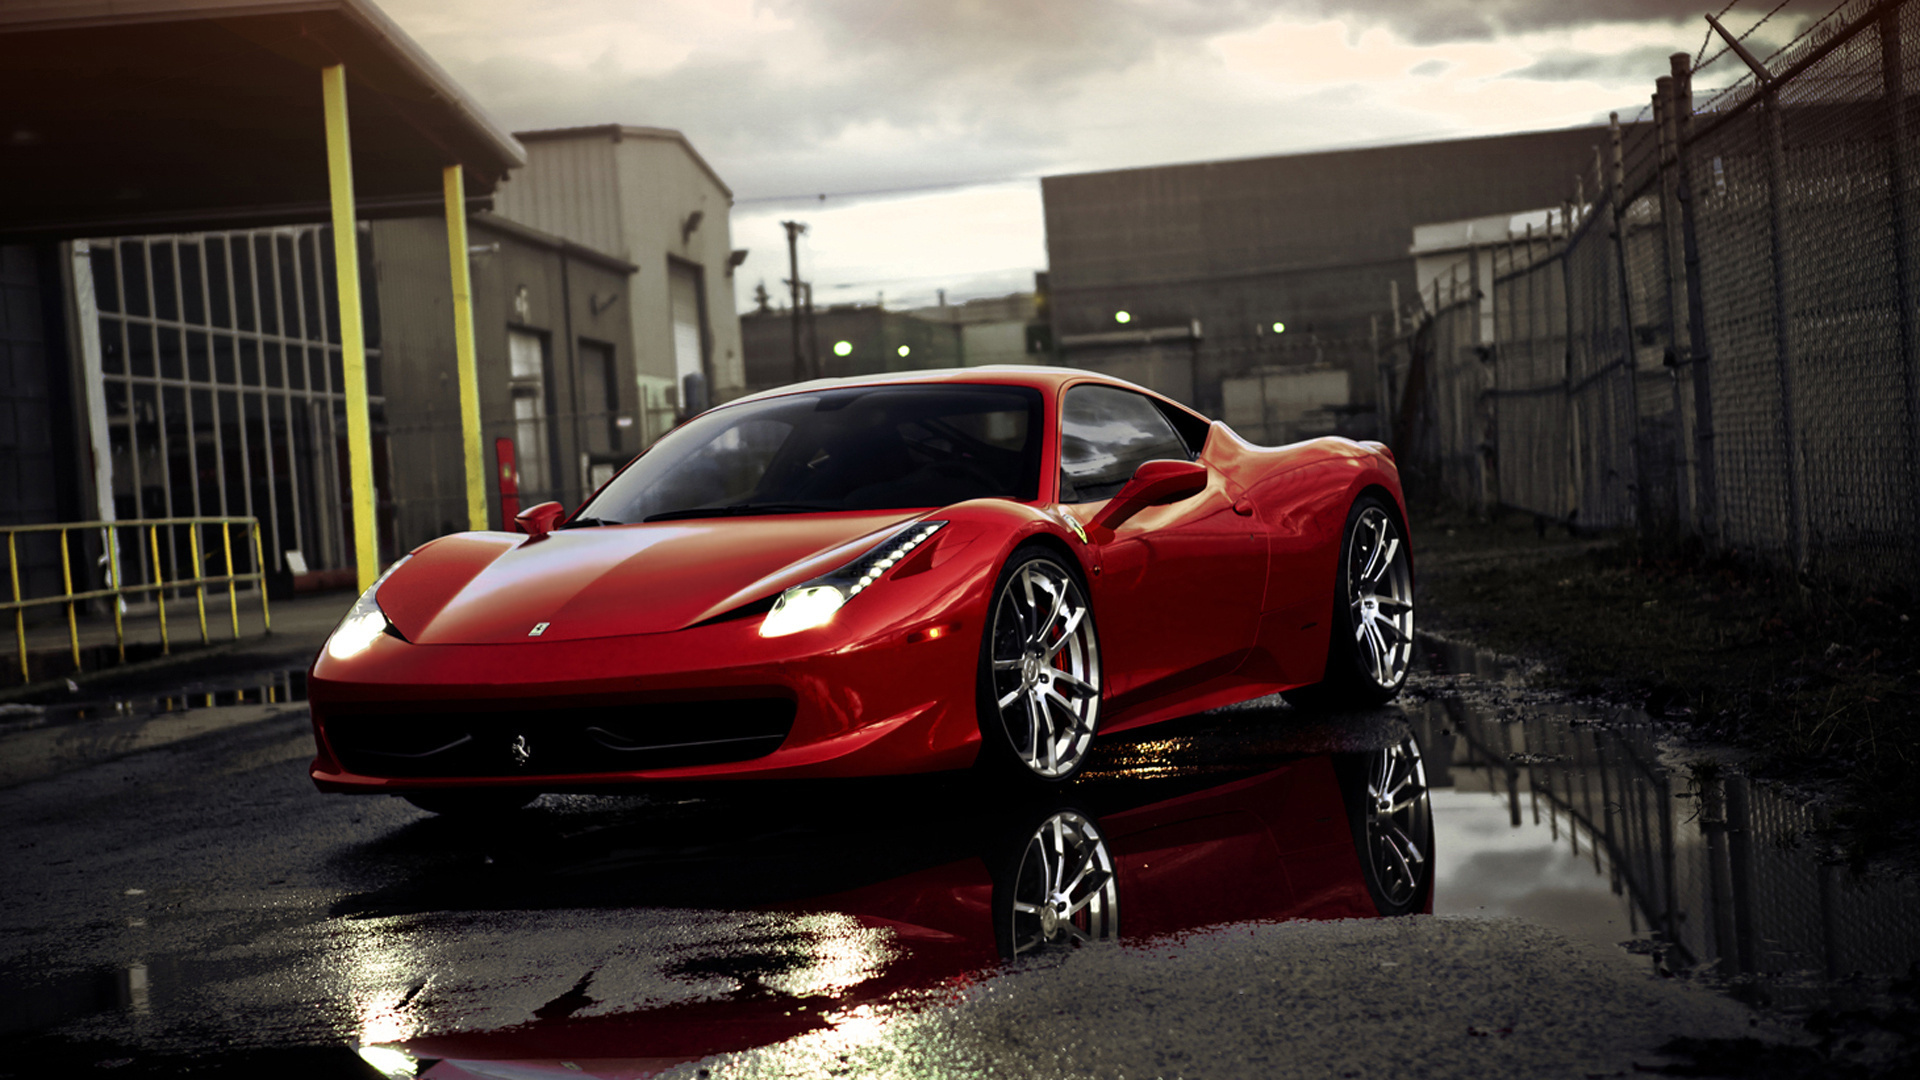 ferrari-458-ittalia-red-1080p-hd-wallpaper